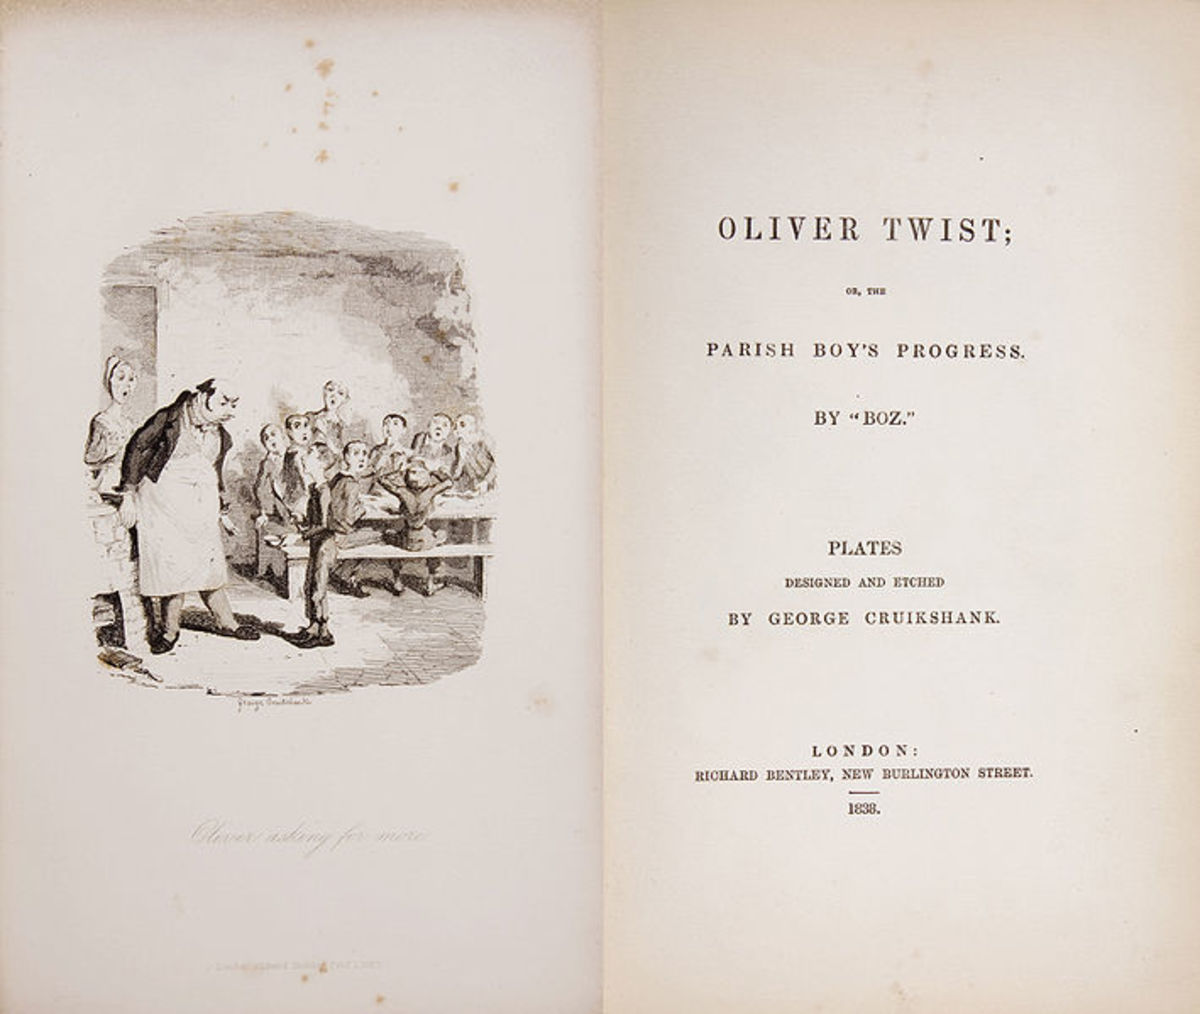 The first edition of Charles Dickens' Oliver Twist.